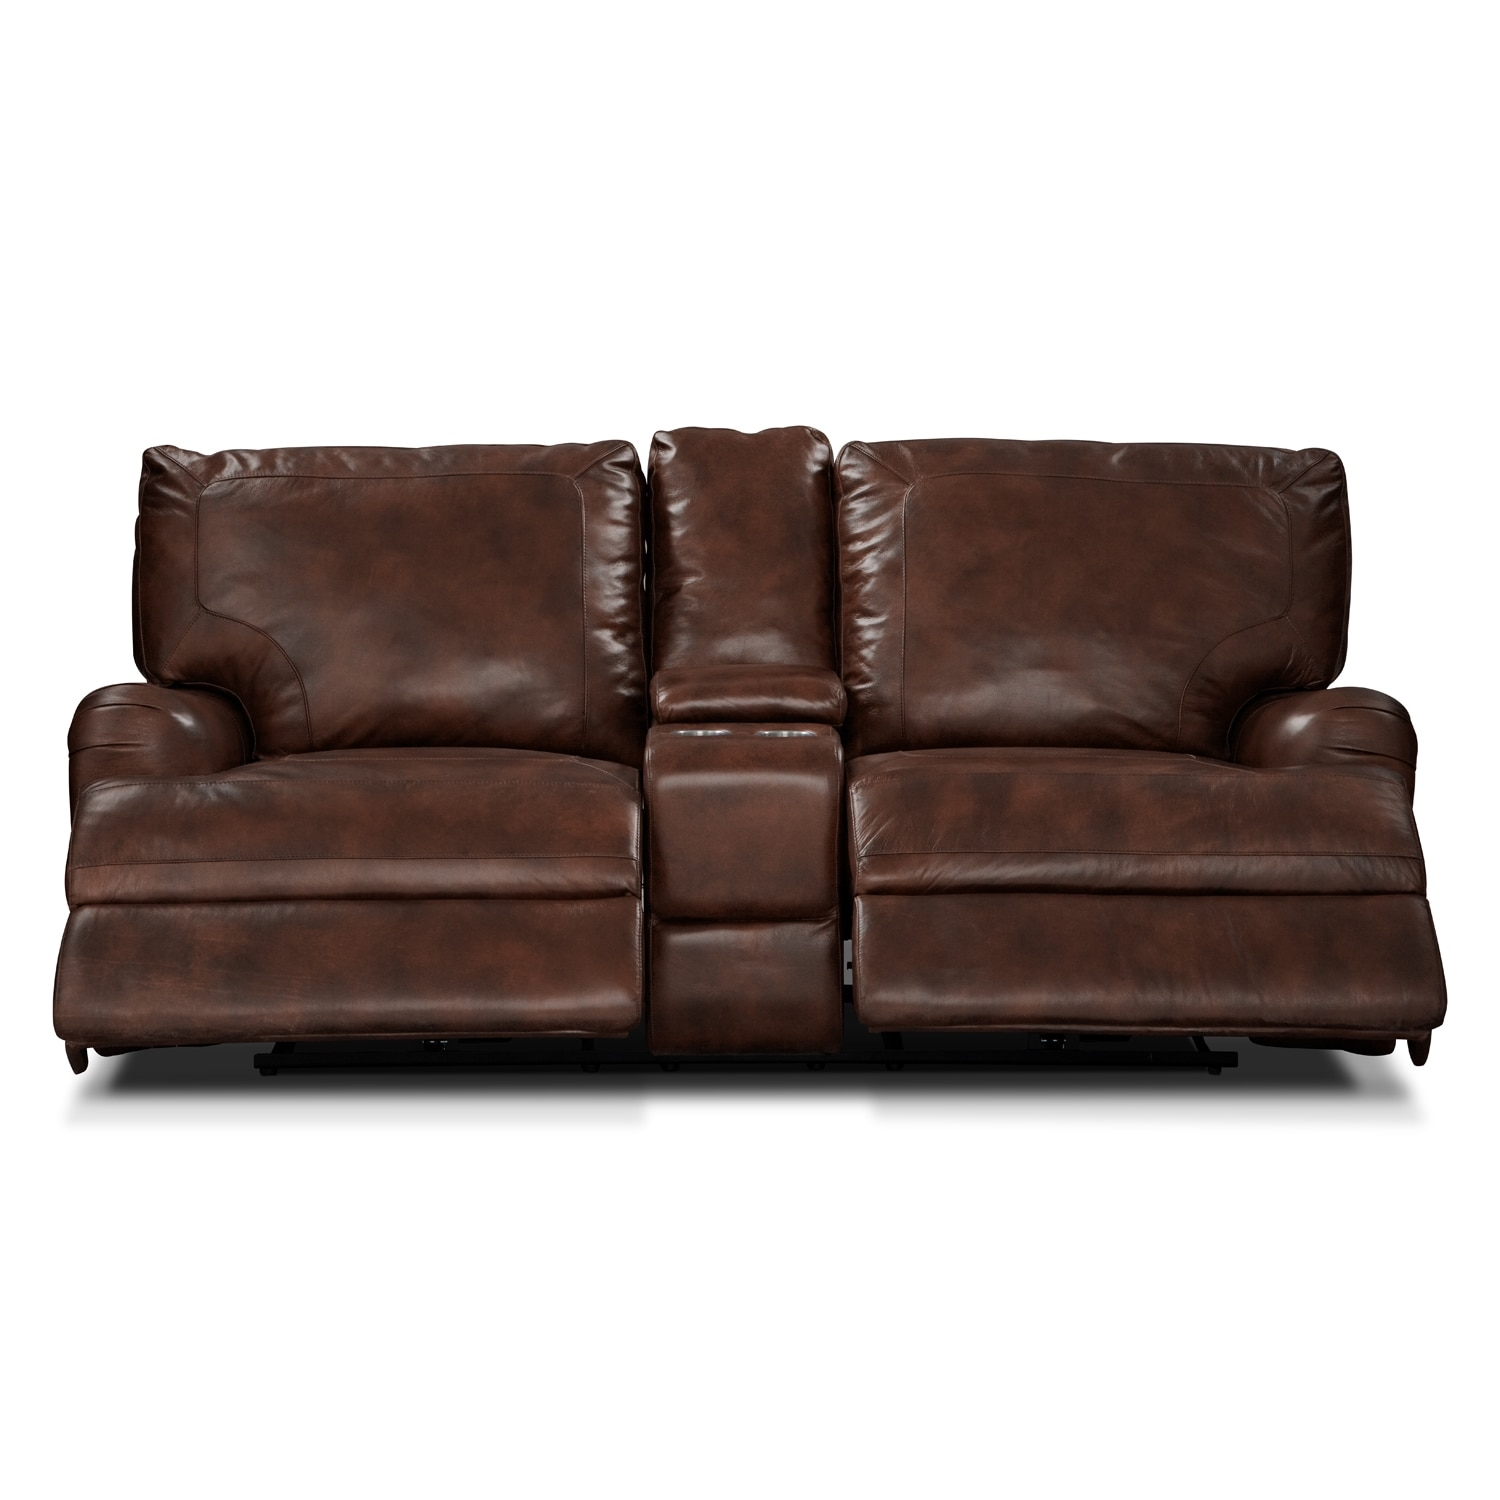 Kingsway Power Reclining Loveseat With Console Brown